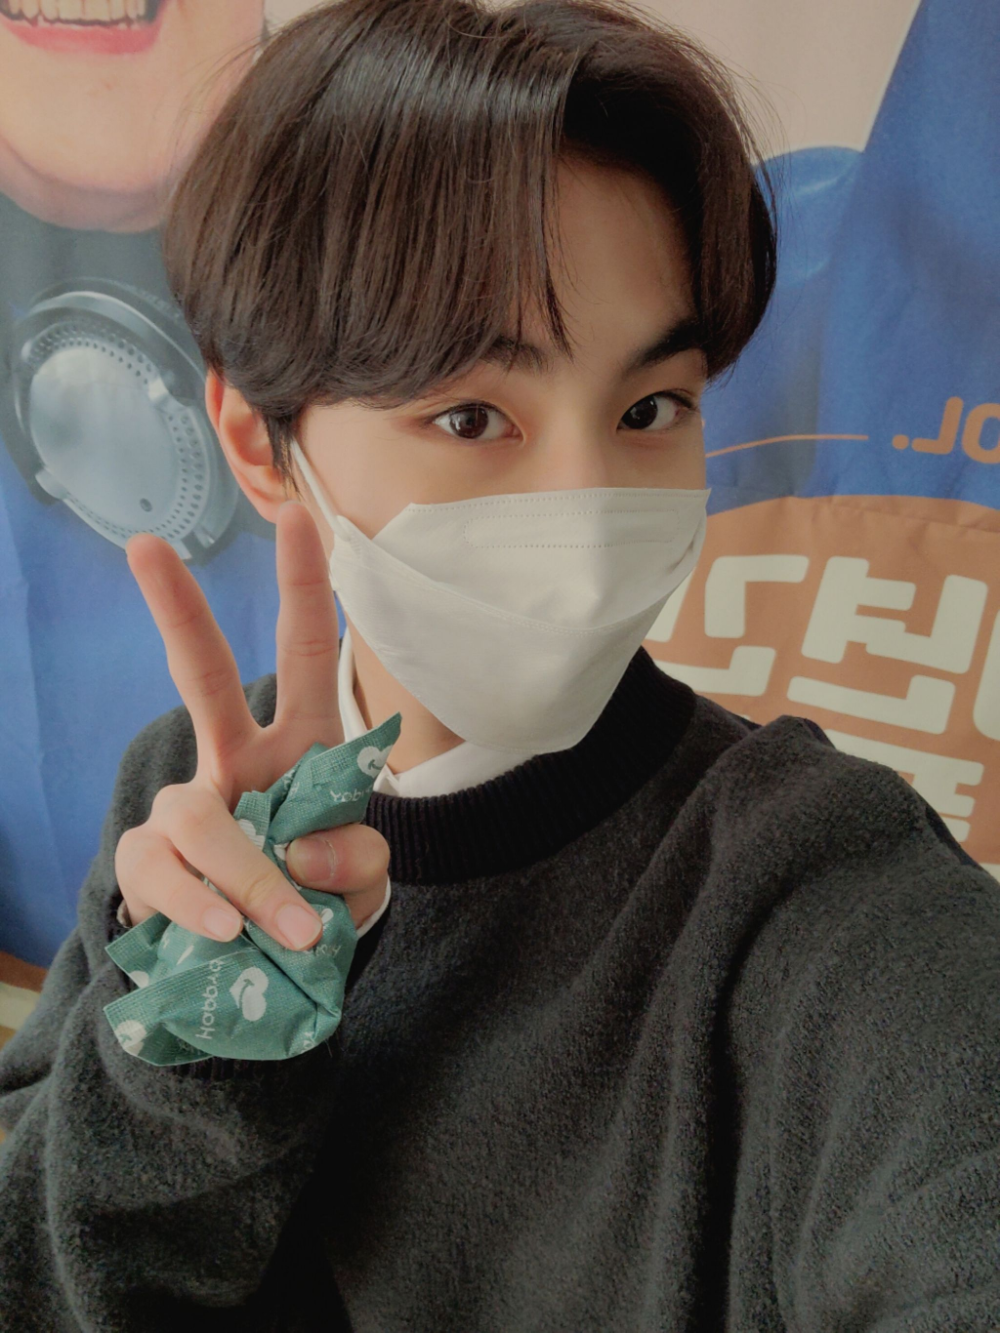 Weverse Artist - Interact with ENHYPEN!